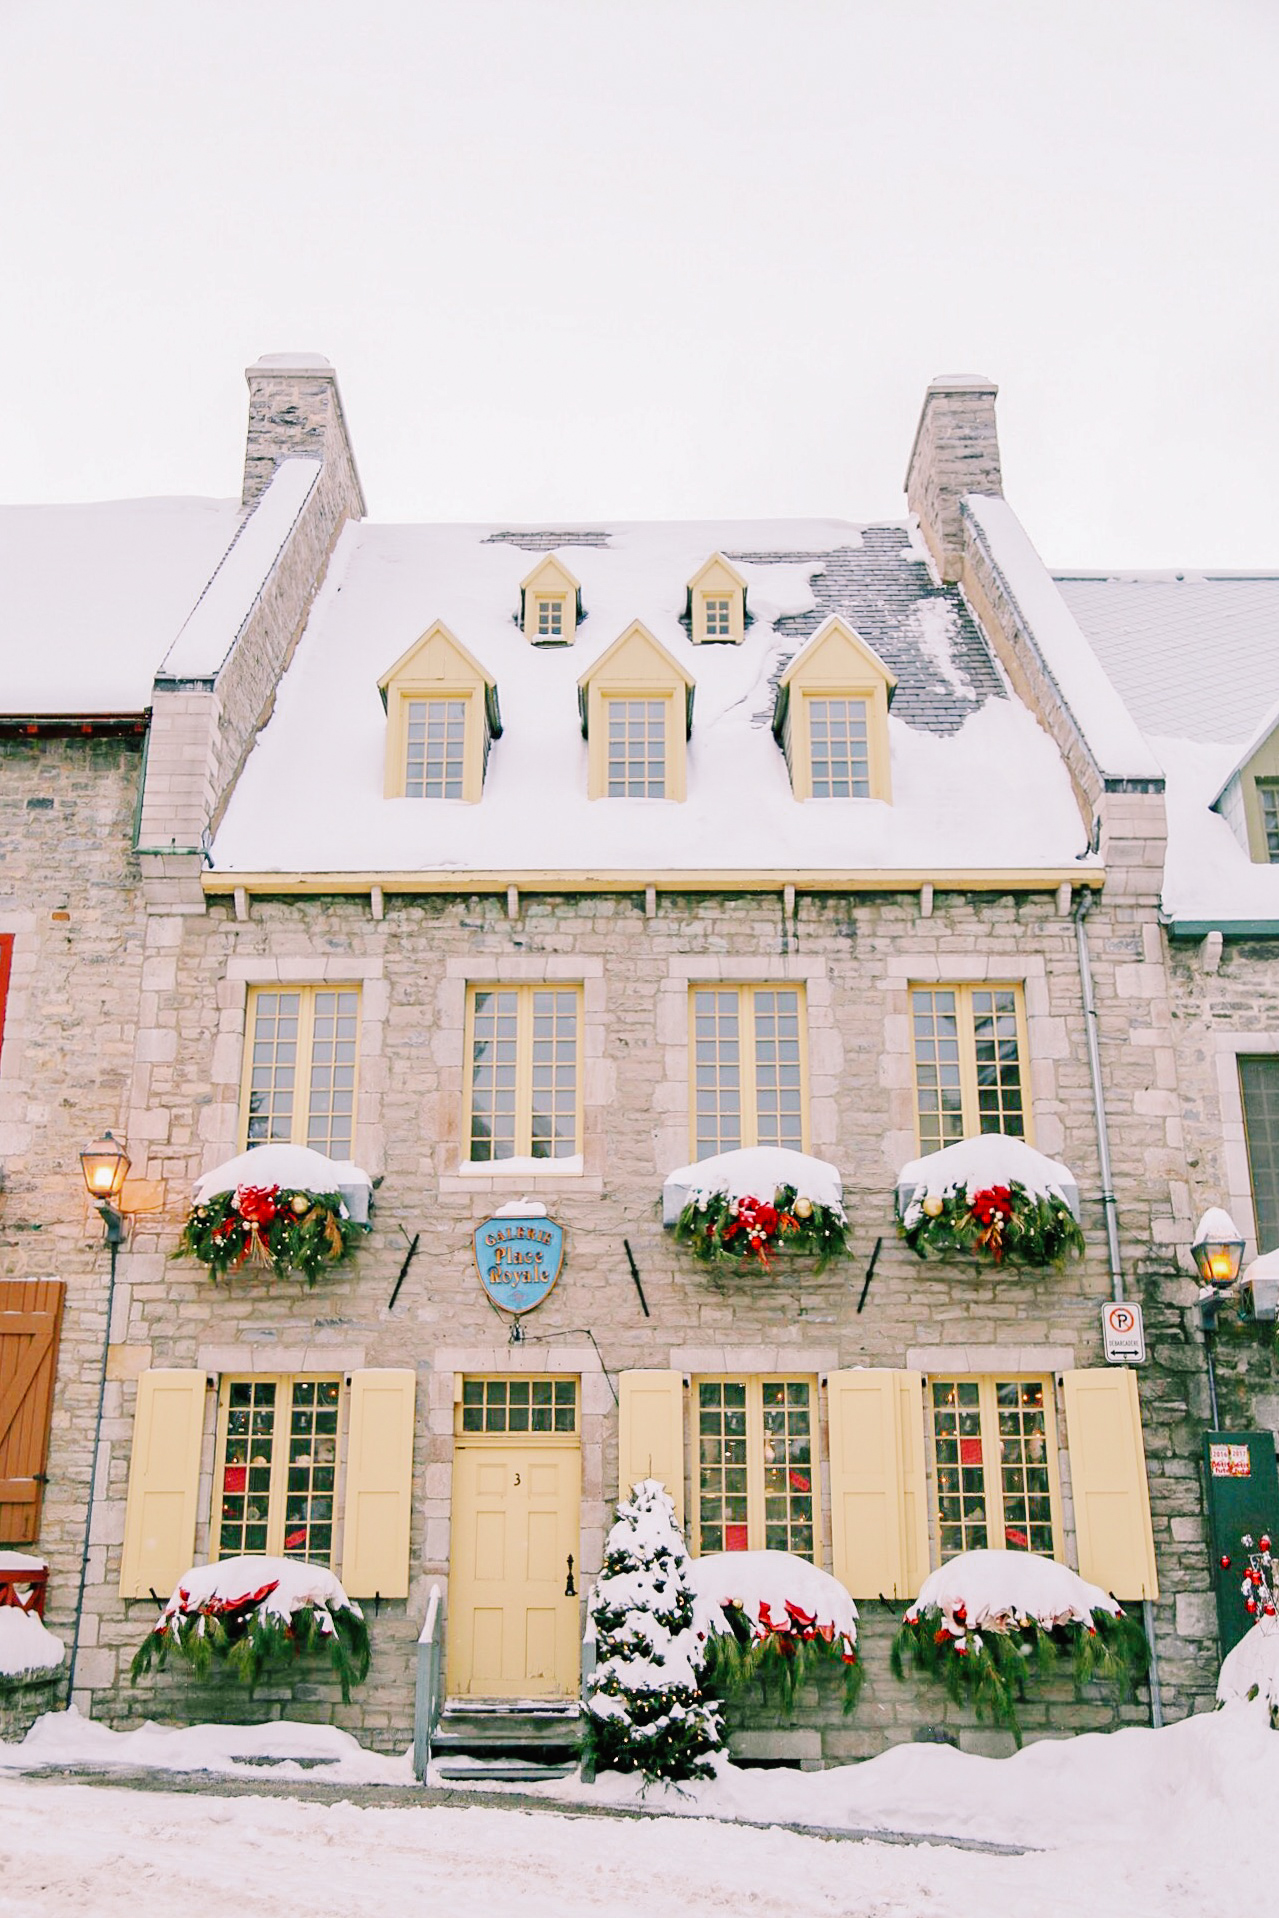 Quebec City Travel Guide including everything you need to know about where to stay, eat, drink, shop, and explore // Rhyme & Reason